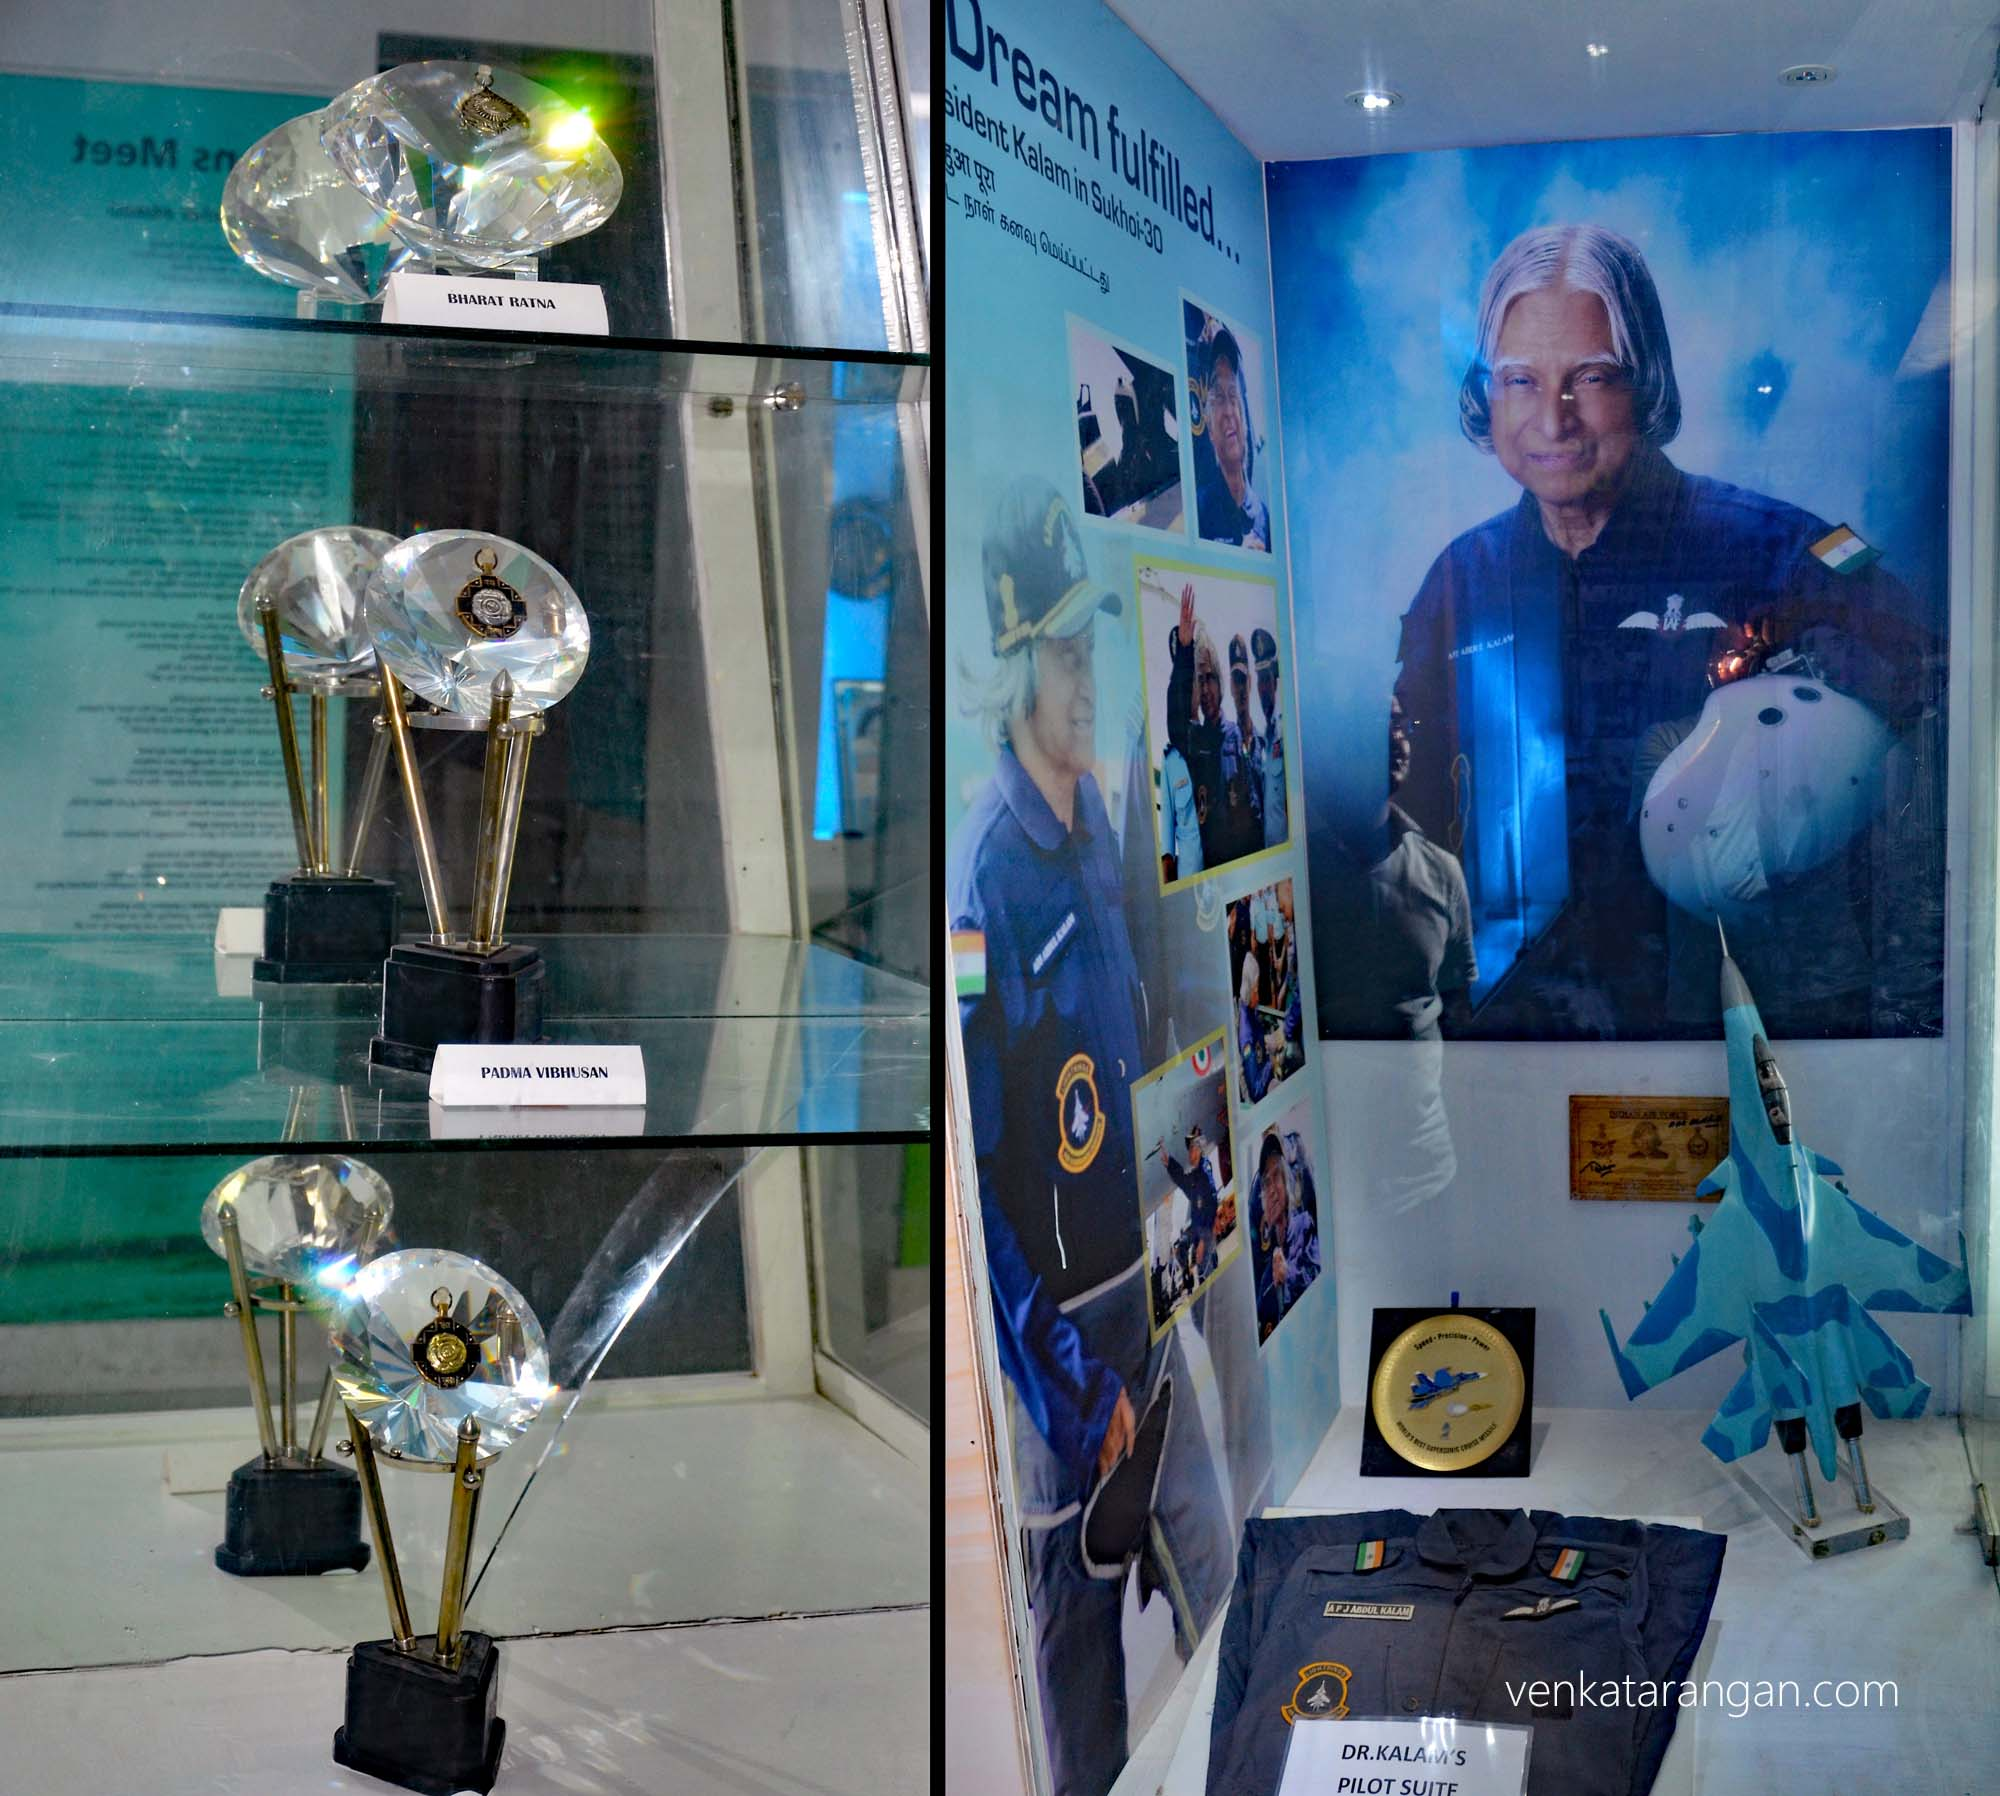 Models of Bharat Ratna and Padma Vibhushan, India's highest civilian honour, presented to Dr Kalam. The Pilot Suite he wore when he flew the Sukhoi fighter jet - flying was his dream